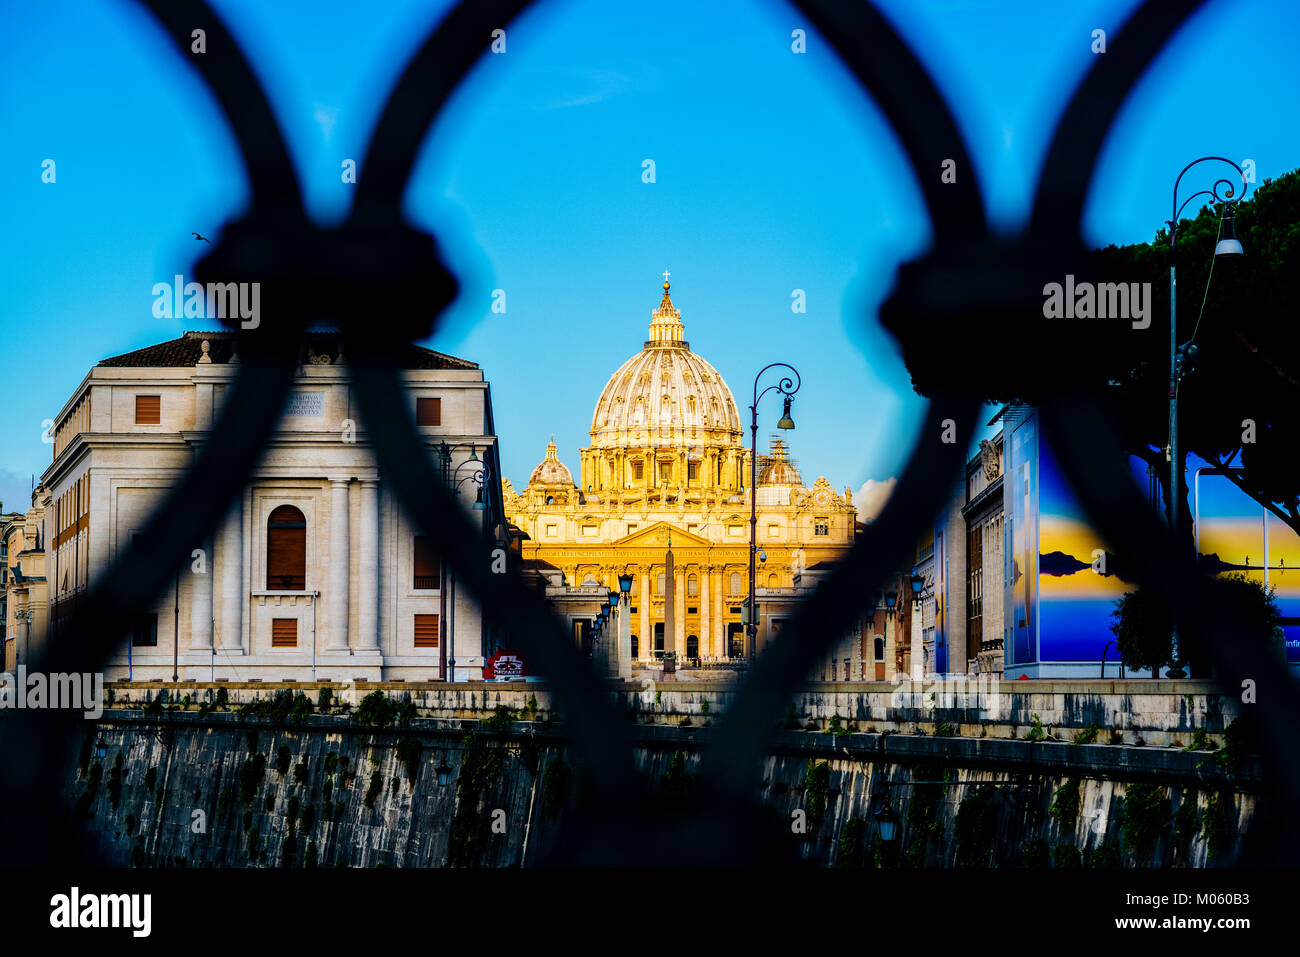 Italy, Rome, City of the Vatican dome of San Pietro seen from the bridge over the Tiber River - Stock Image